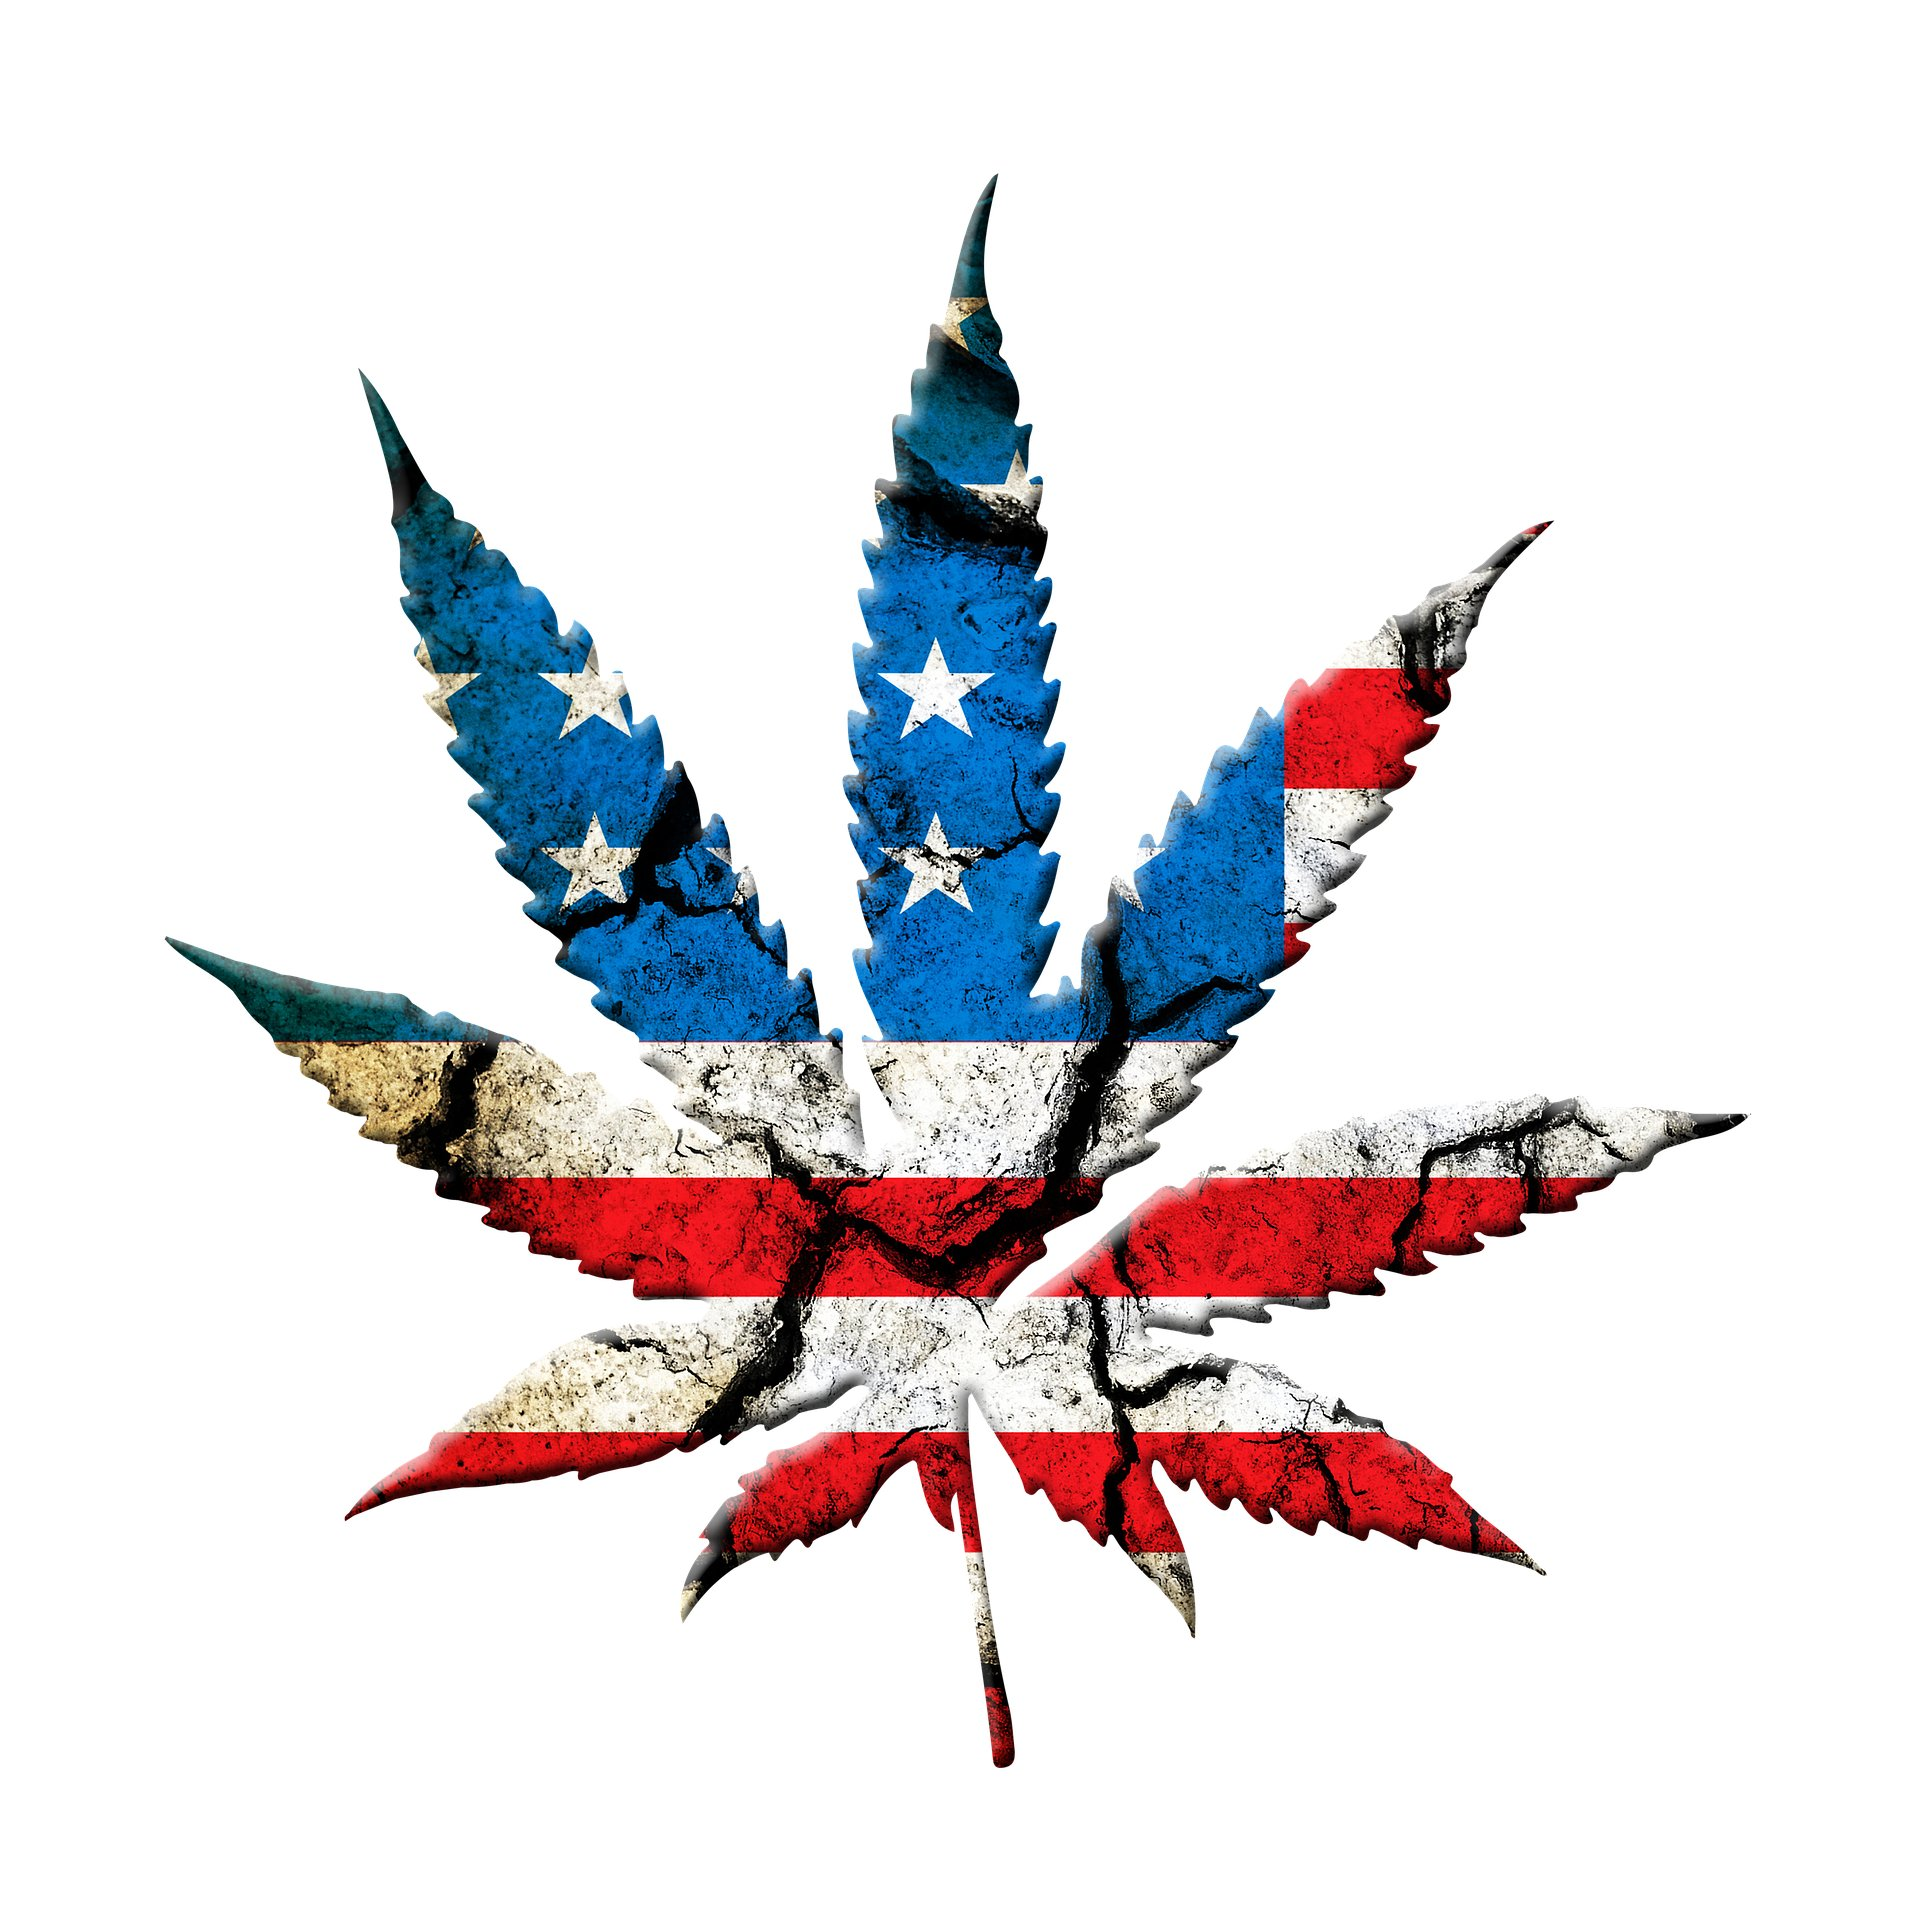 News over this past week will accelerate #marijuanalegalization in the US. #Mexico legalized #cannabis, #Democrats took back the House & #JeffSessions resigned.